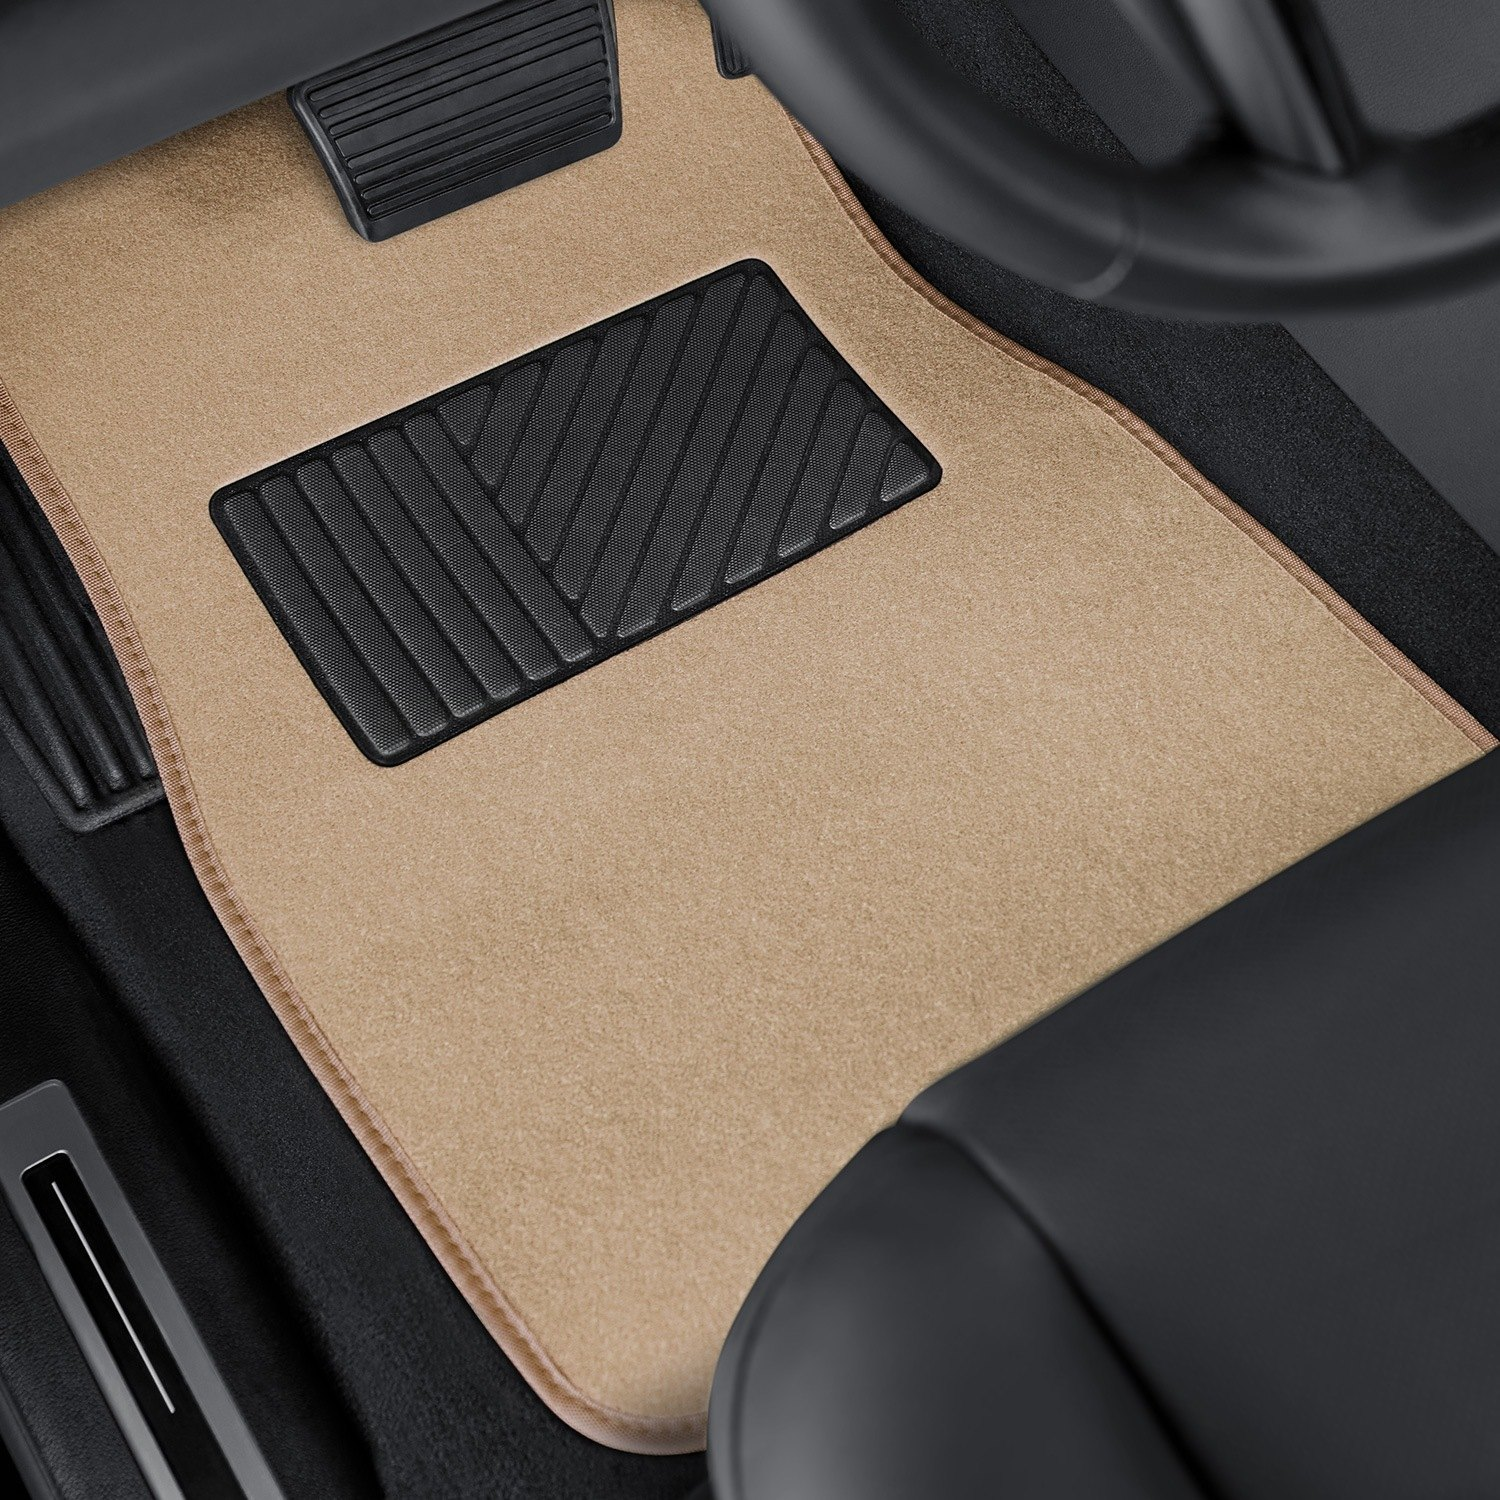 OxGord® - DELUXE Heavy Duty Carpeted Floor Mats with Heel Pad